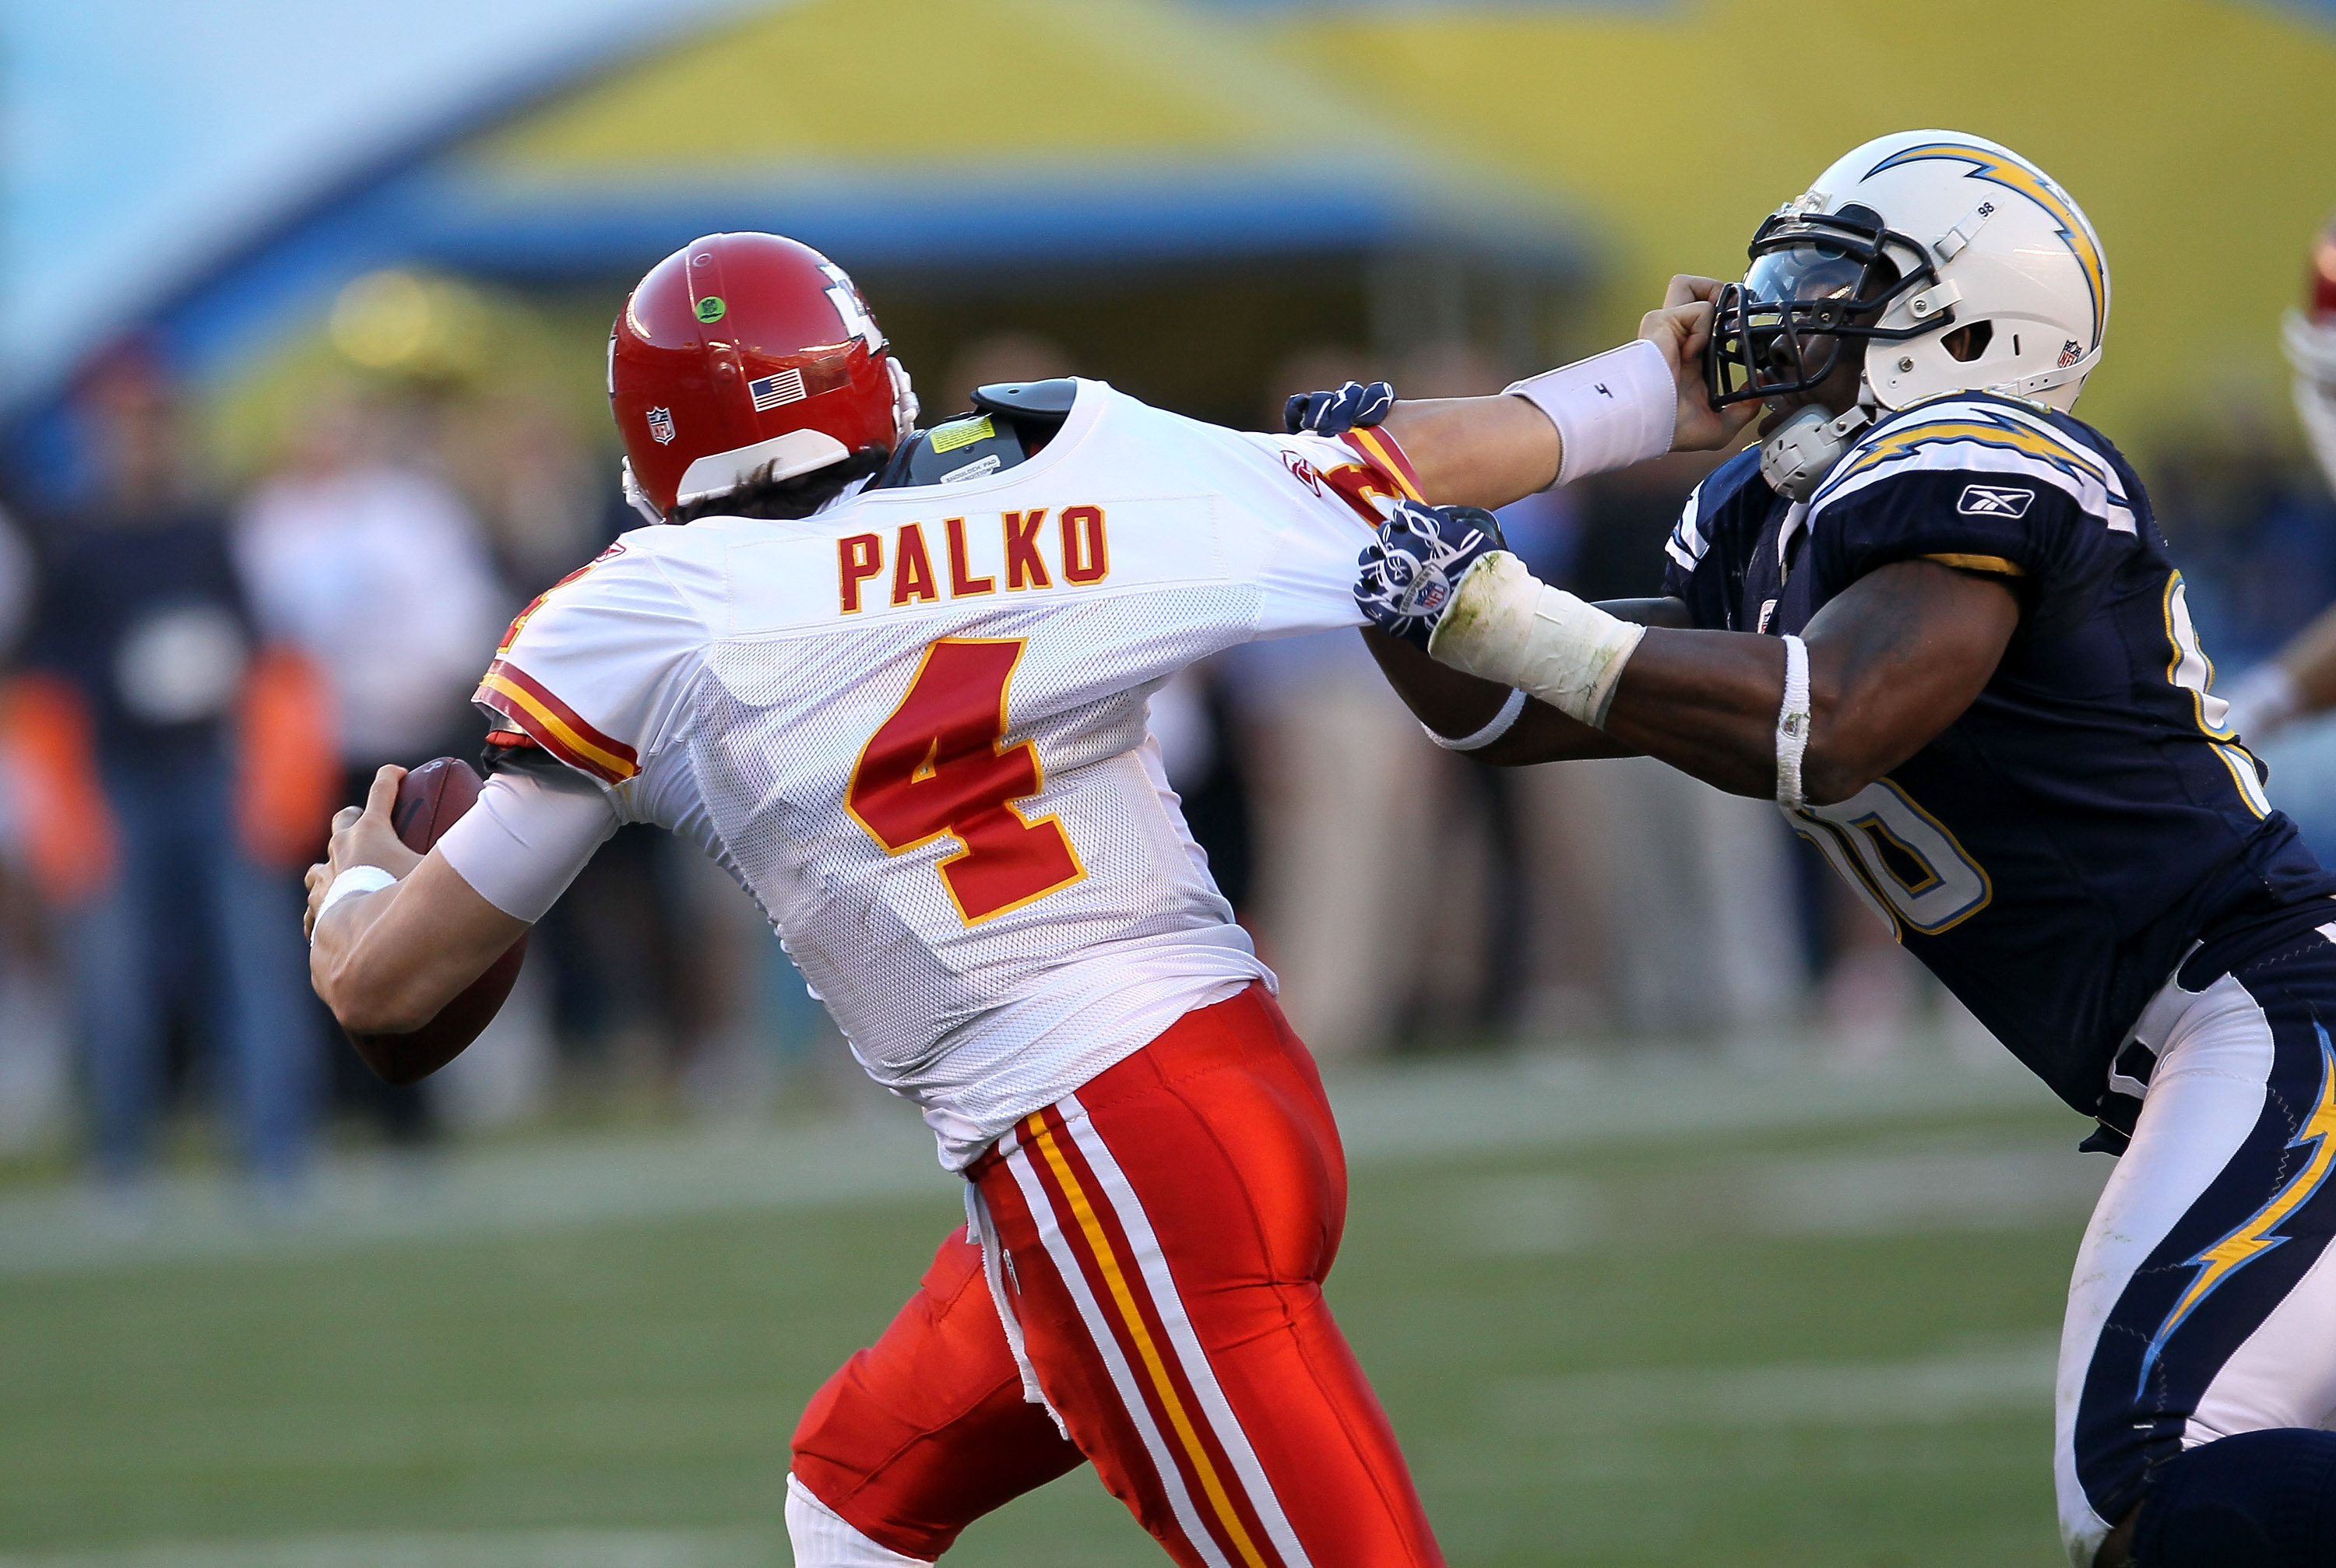 SAN DIEGO - DECEMBER 12:  Quarterback Tyler Palko #4 of the Kansas City Chiefs tries to fend off linebacker Antwan Barnes #98 of the San Diego Chargers at Qualcomm Stadium on December 12, 2010 in San Diego, California.  The Chargers won 31-0.  (Photo by S